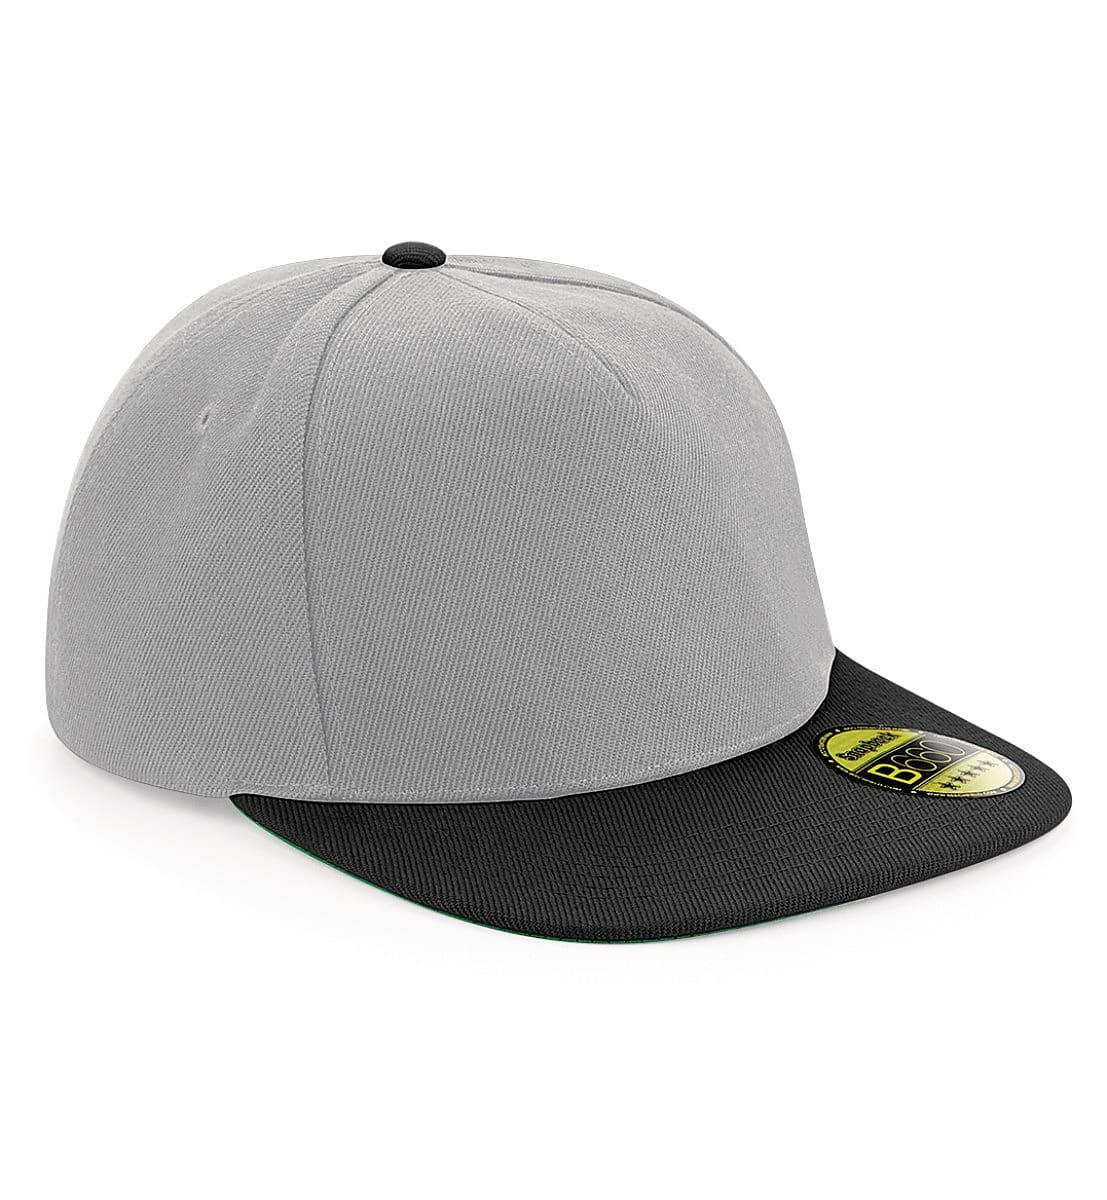 Beechfield Original Flat Peak Snapback in Grey / Black (Product Code: B660)